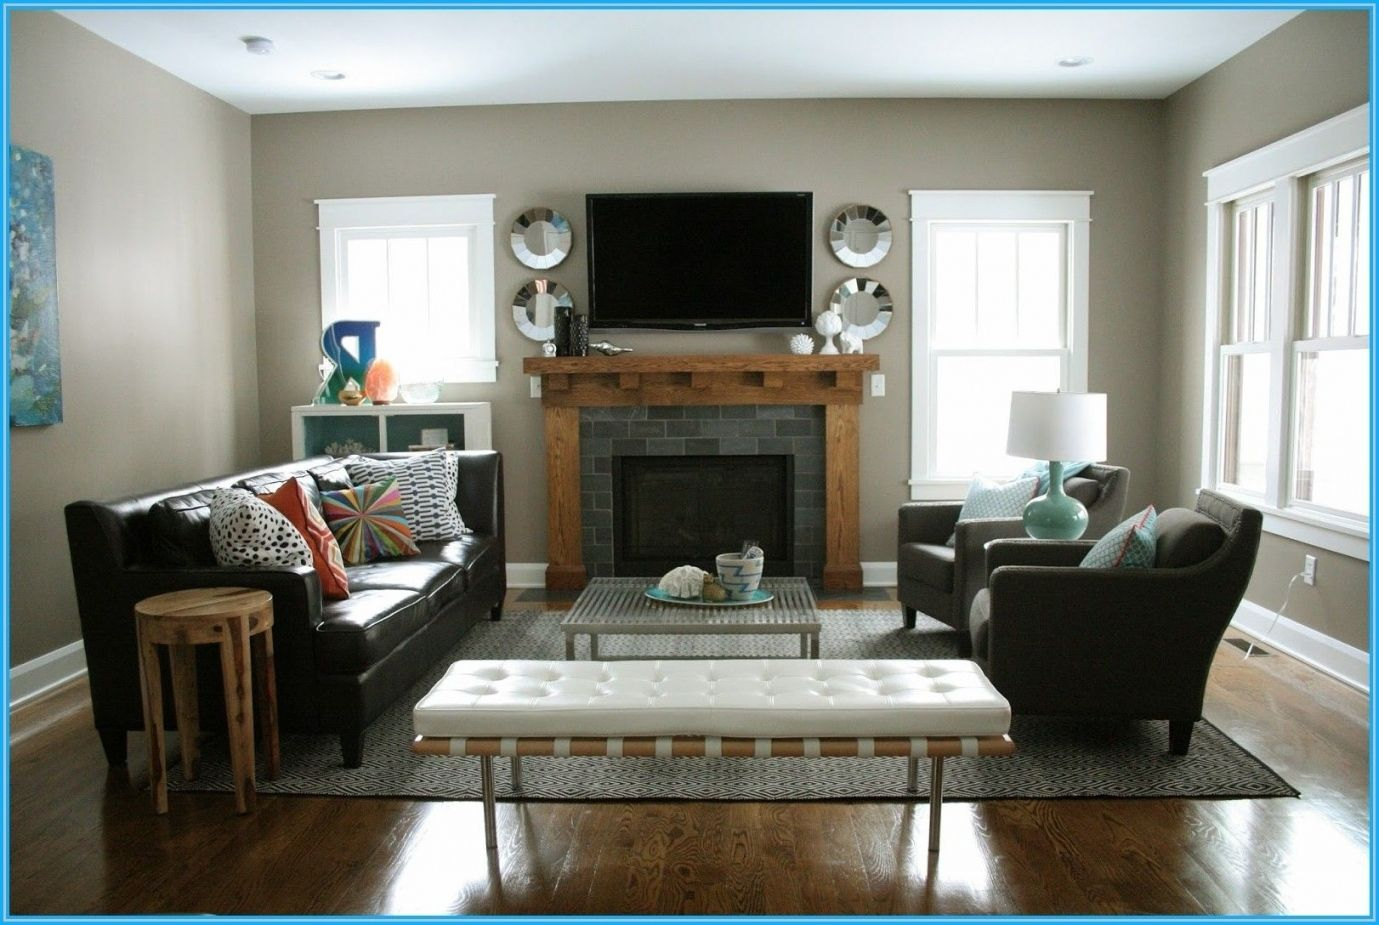 12 Insanely Beautiful Living Room Layout Ideas With Tv And Fireplace Sl09o1 Livingroom Layout Small Living Room Layout Classic Furniture Living Room